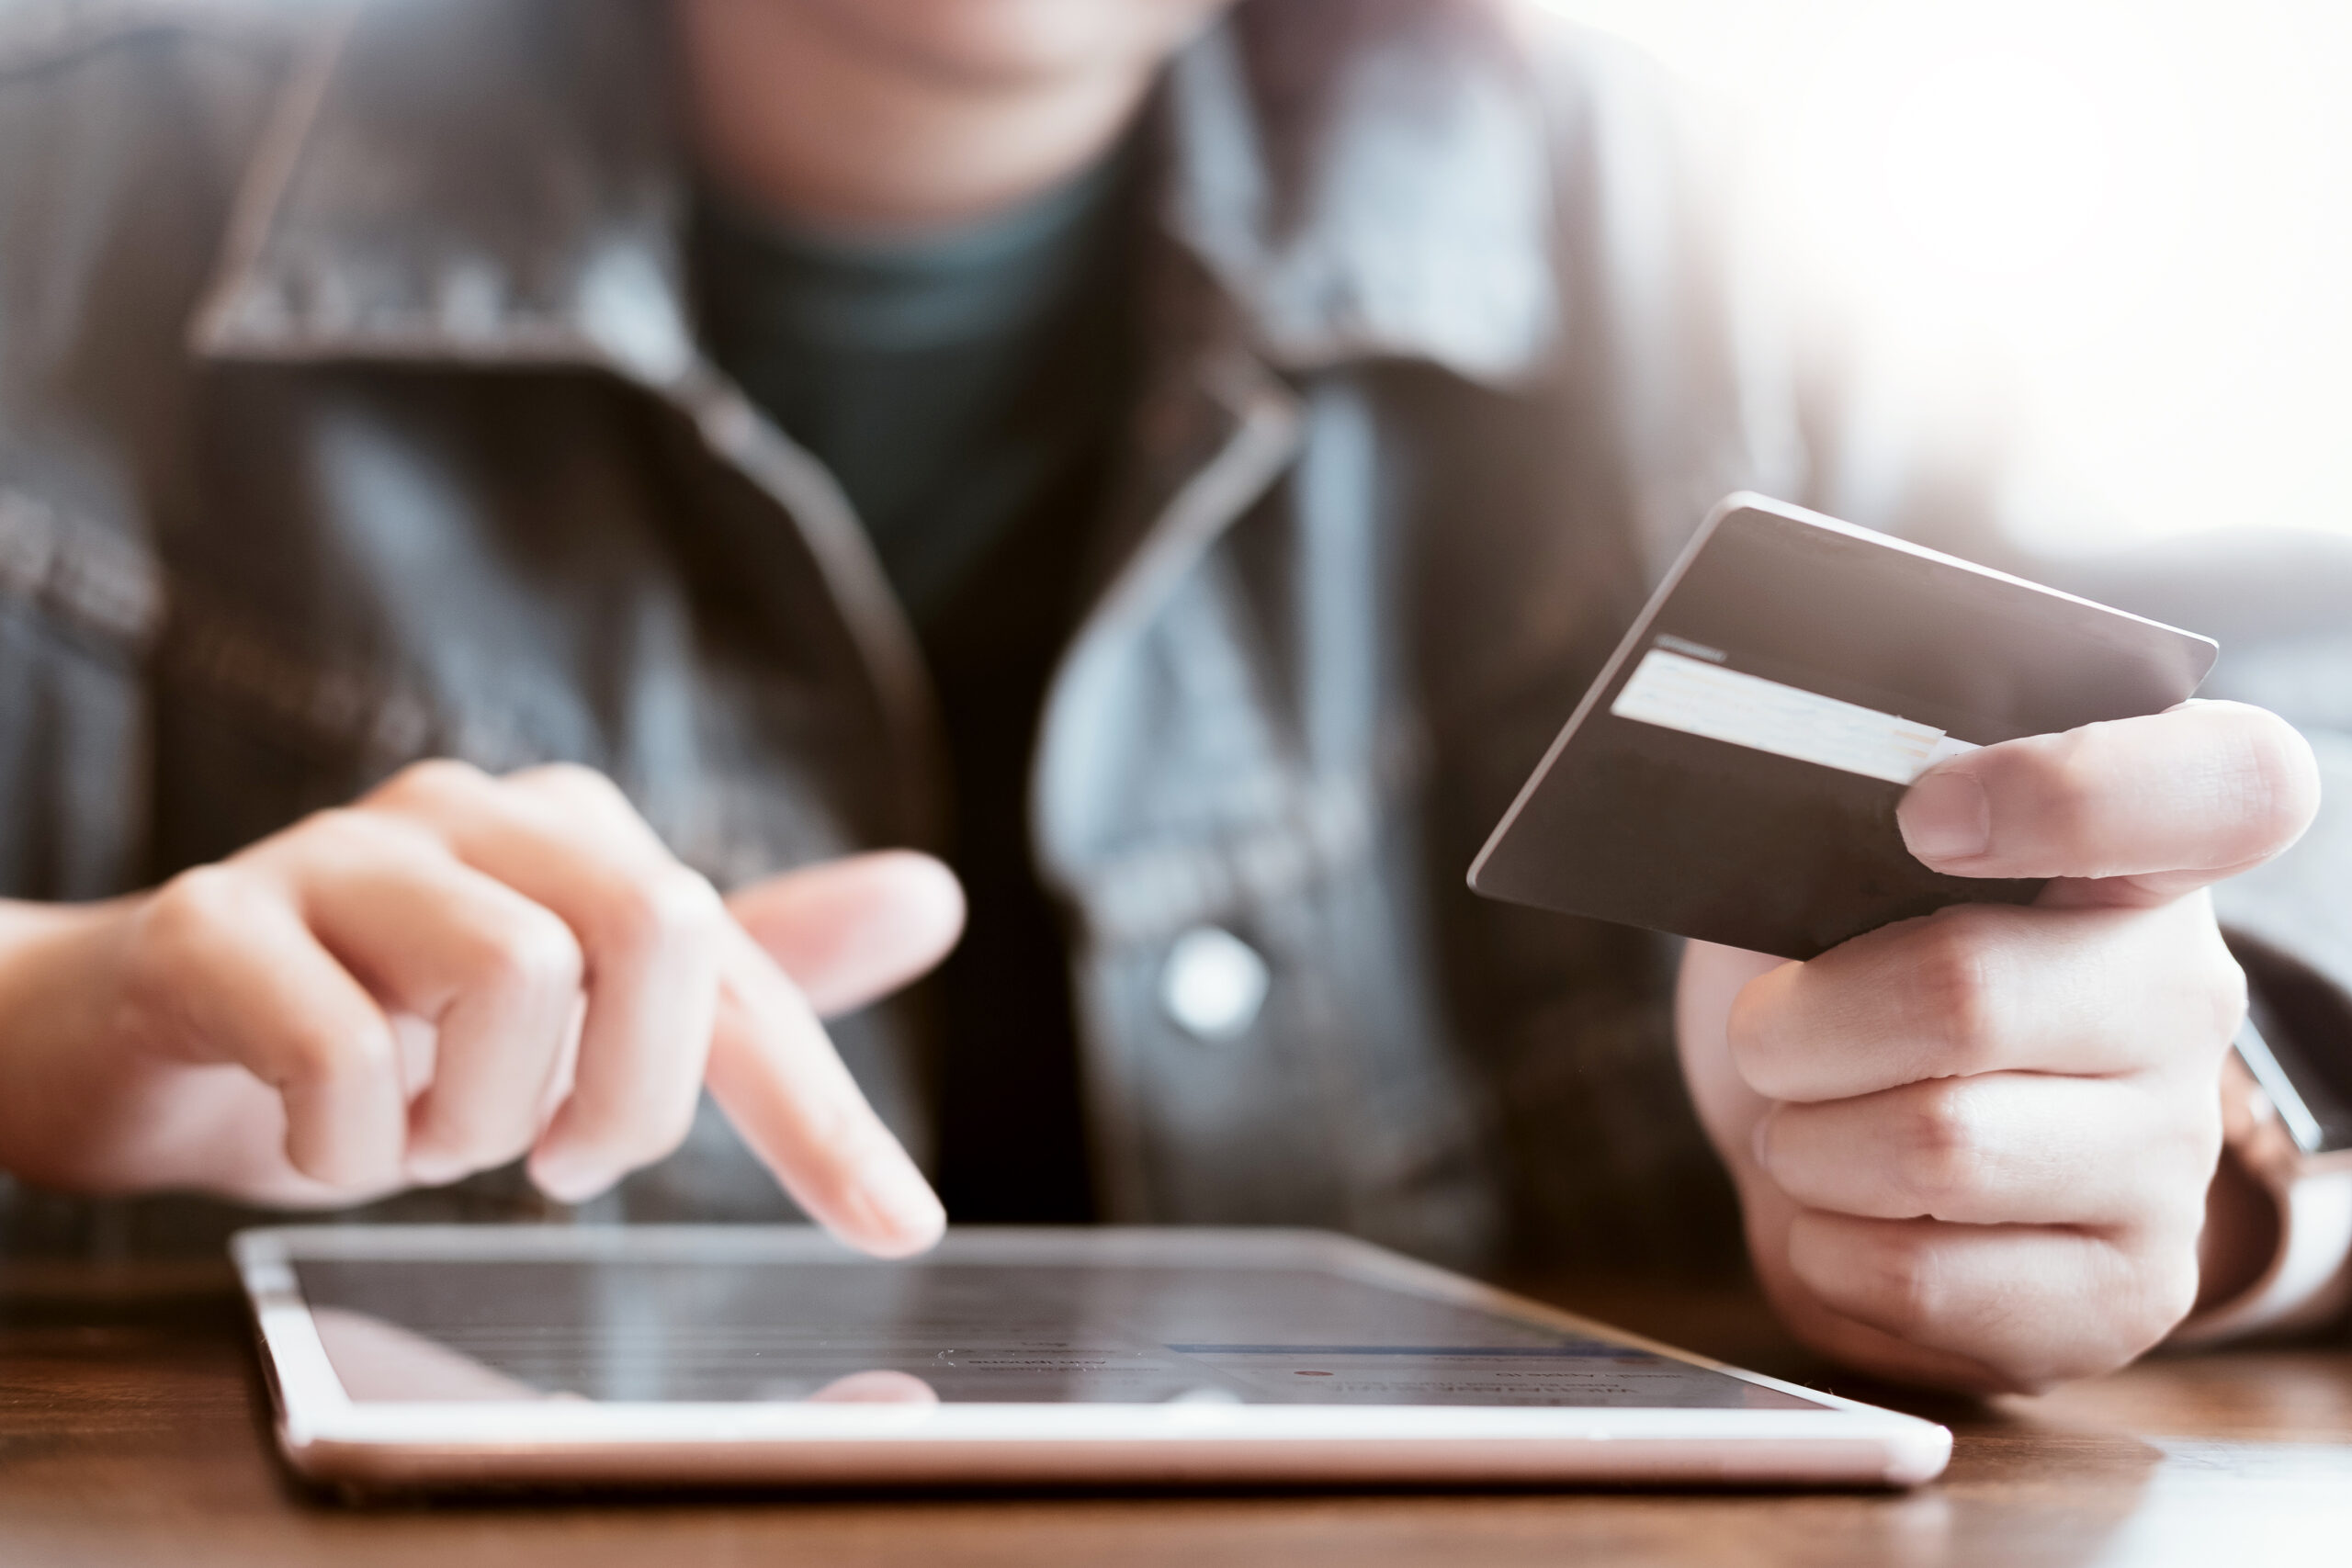 women hold card and use tablet on wood table,Online shopping,hands holding credit card and using laptop